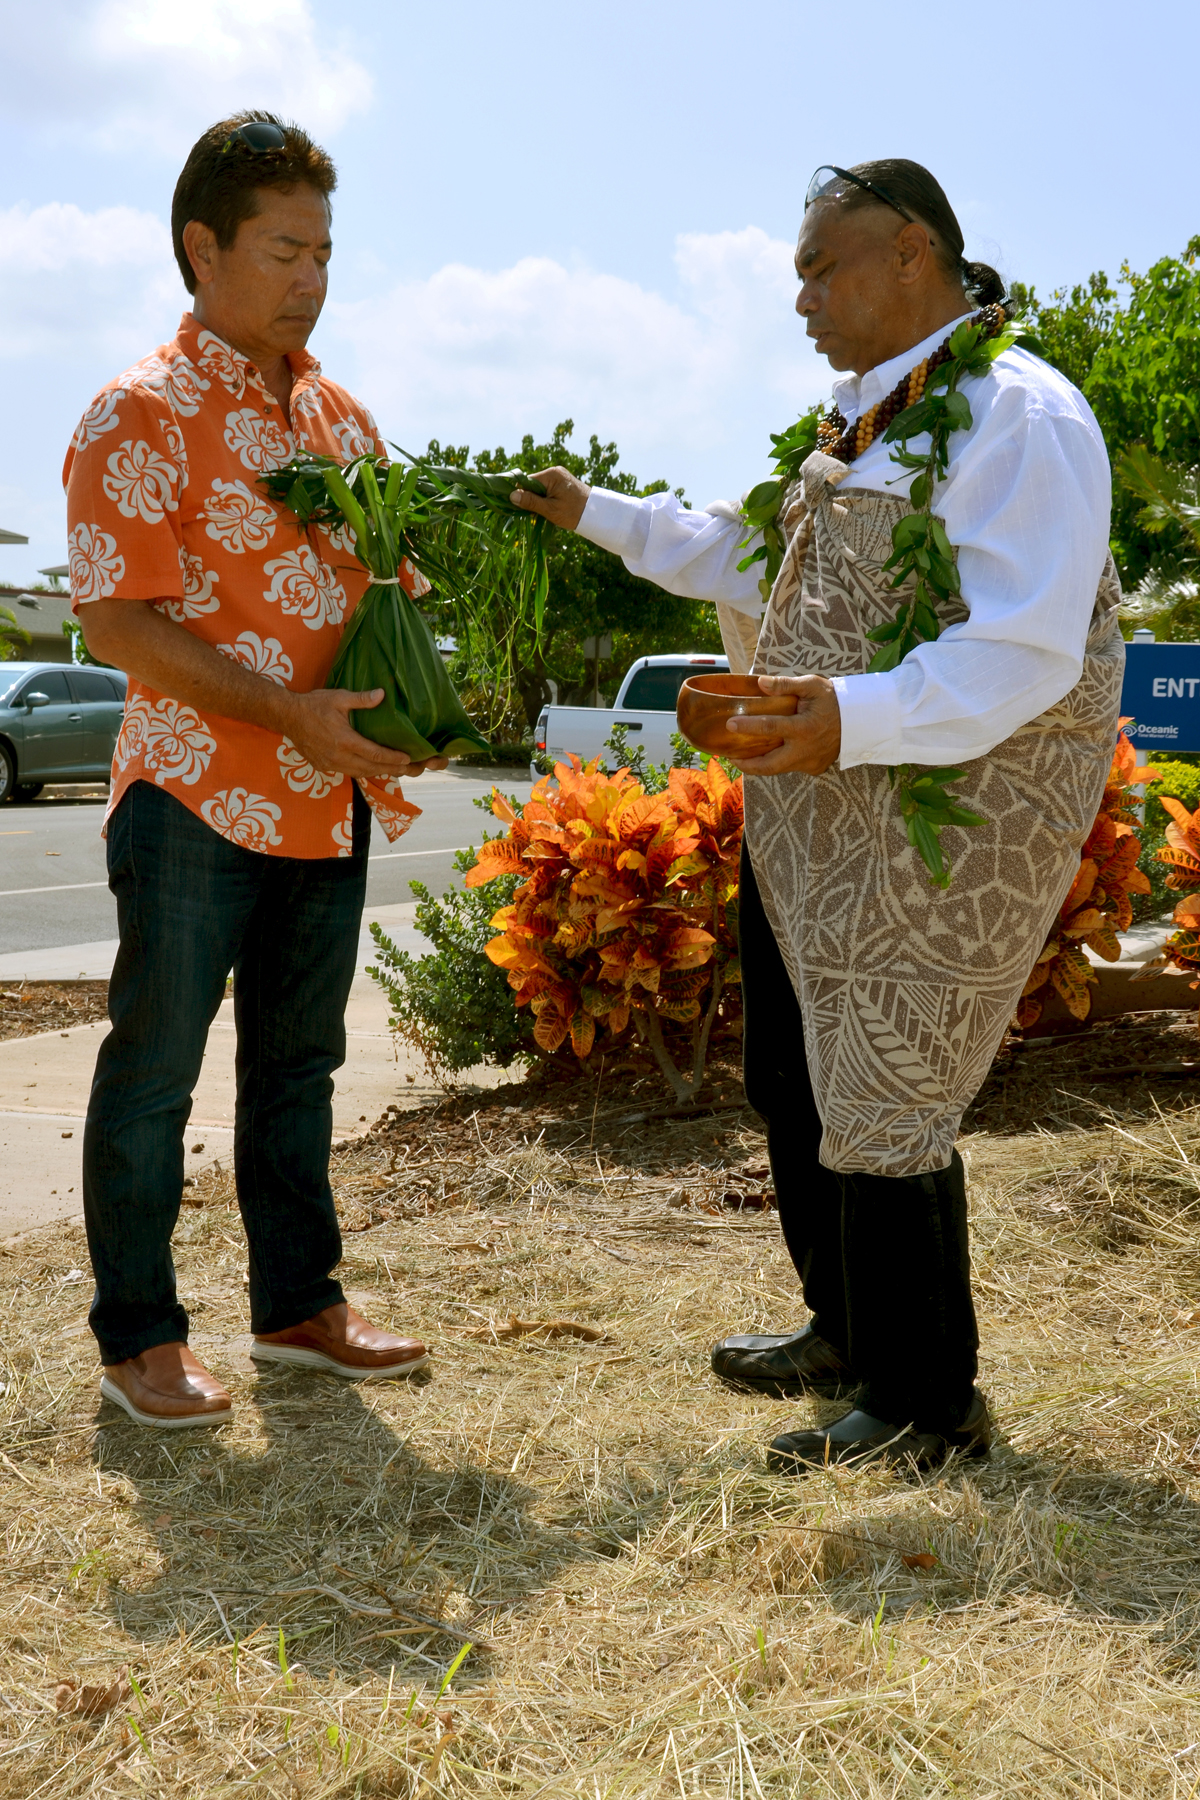 Mark Teruya, chairman and CEO of Armstrong Produce, holds a ho`okupu during the groundbreaking ceremony for construction of Kula Produce's new facility in Maui Lani. Kahu Marcelo Bustillos officiated the private groundbreaking event on October 9. Photo courtesy of Maui Lani Village Center.